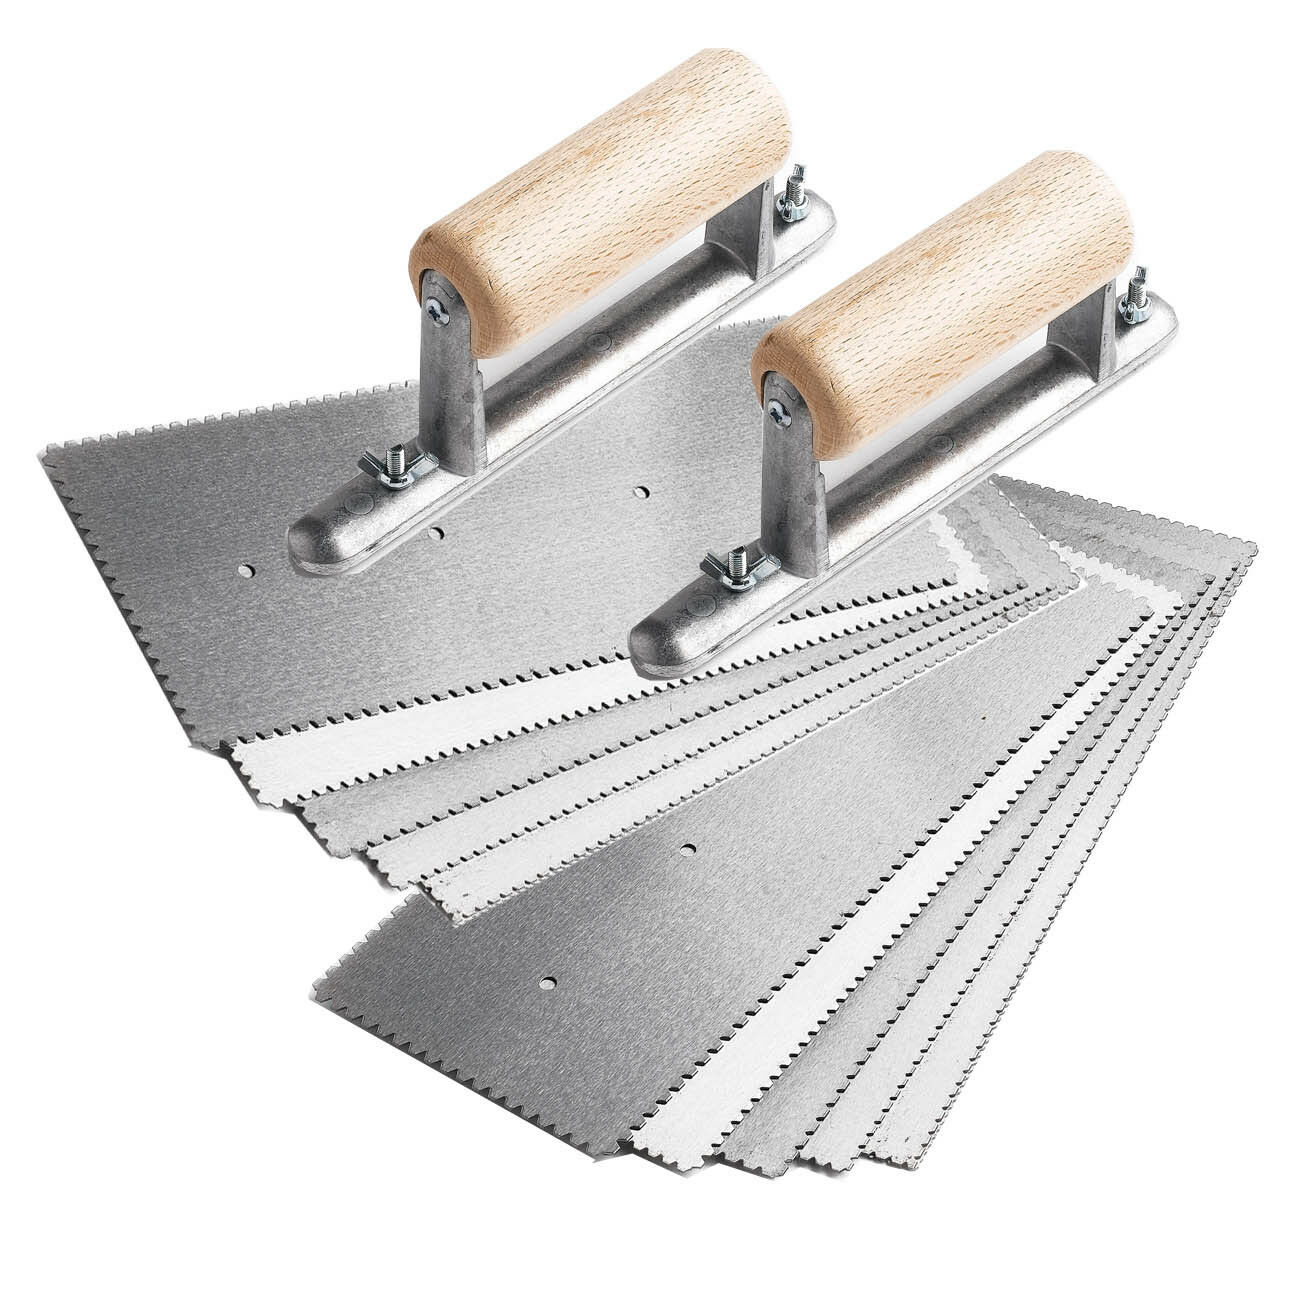 10 x A2 Adhesive trowels Amtico keardean with 2 x Handles with screws